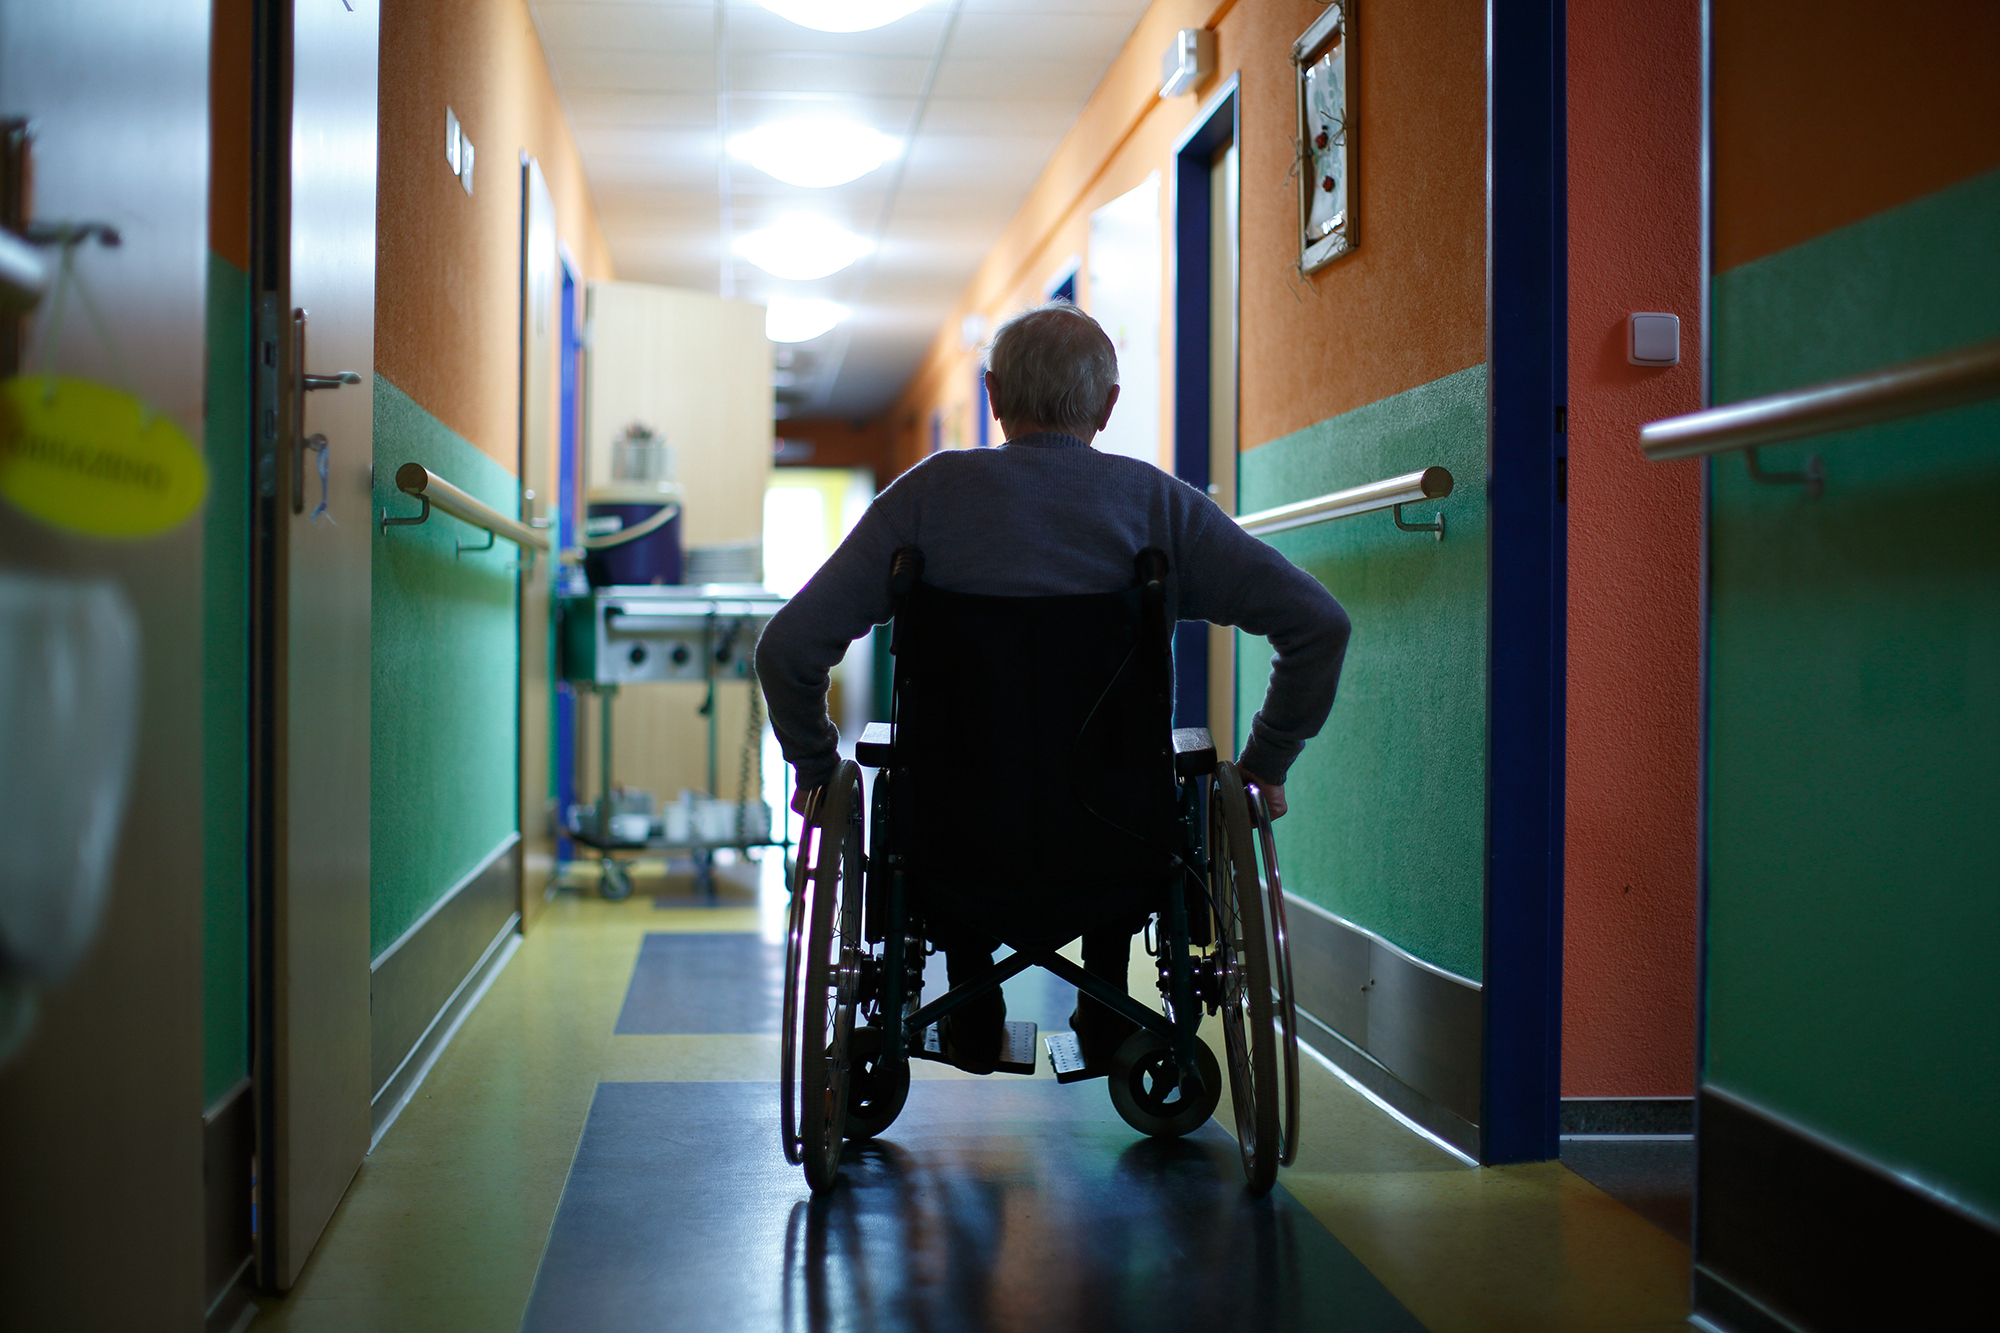 Administration Proposes Rules To Modernize Nursing Home Safety